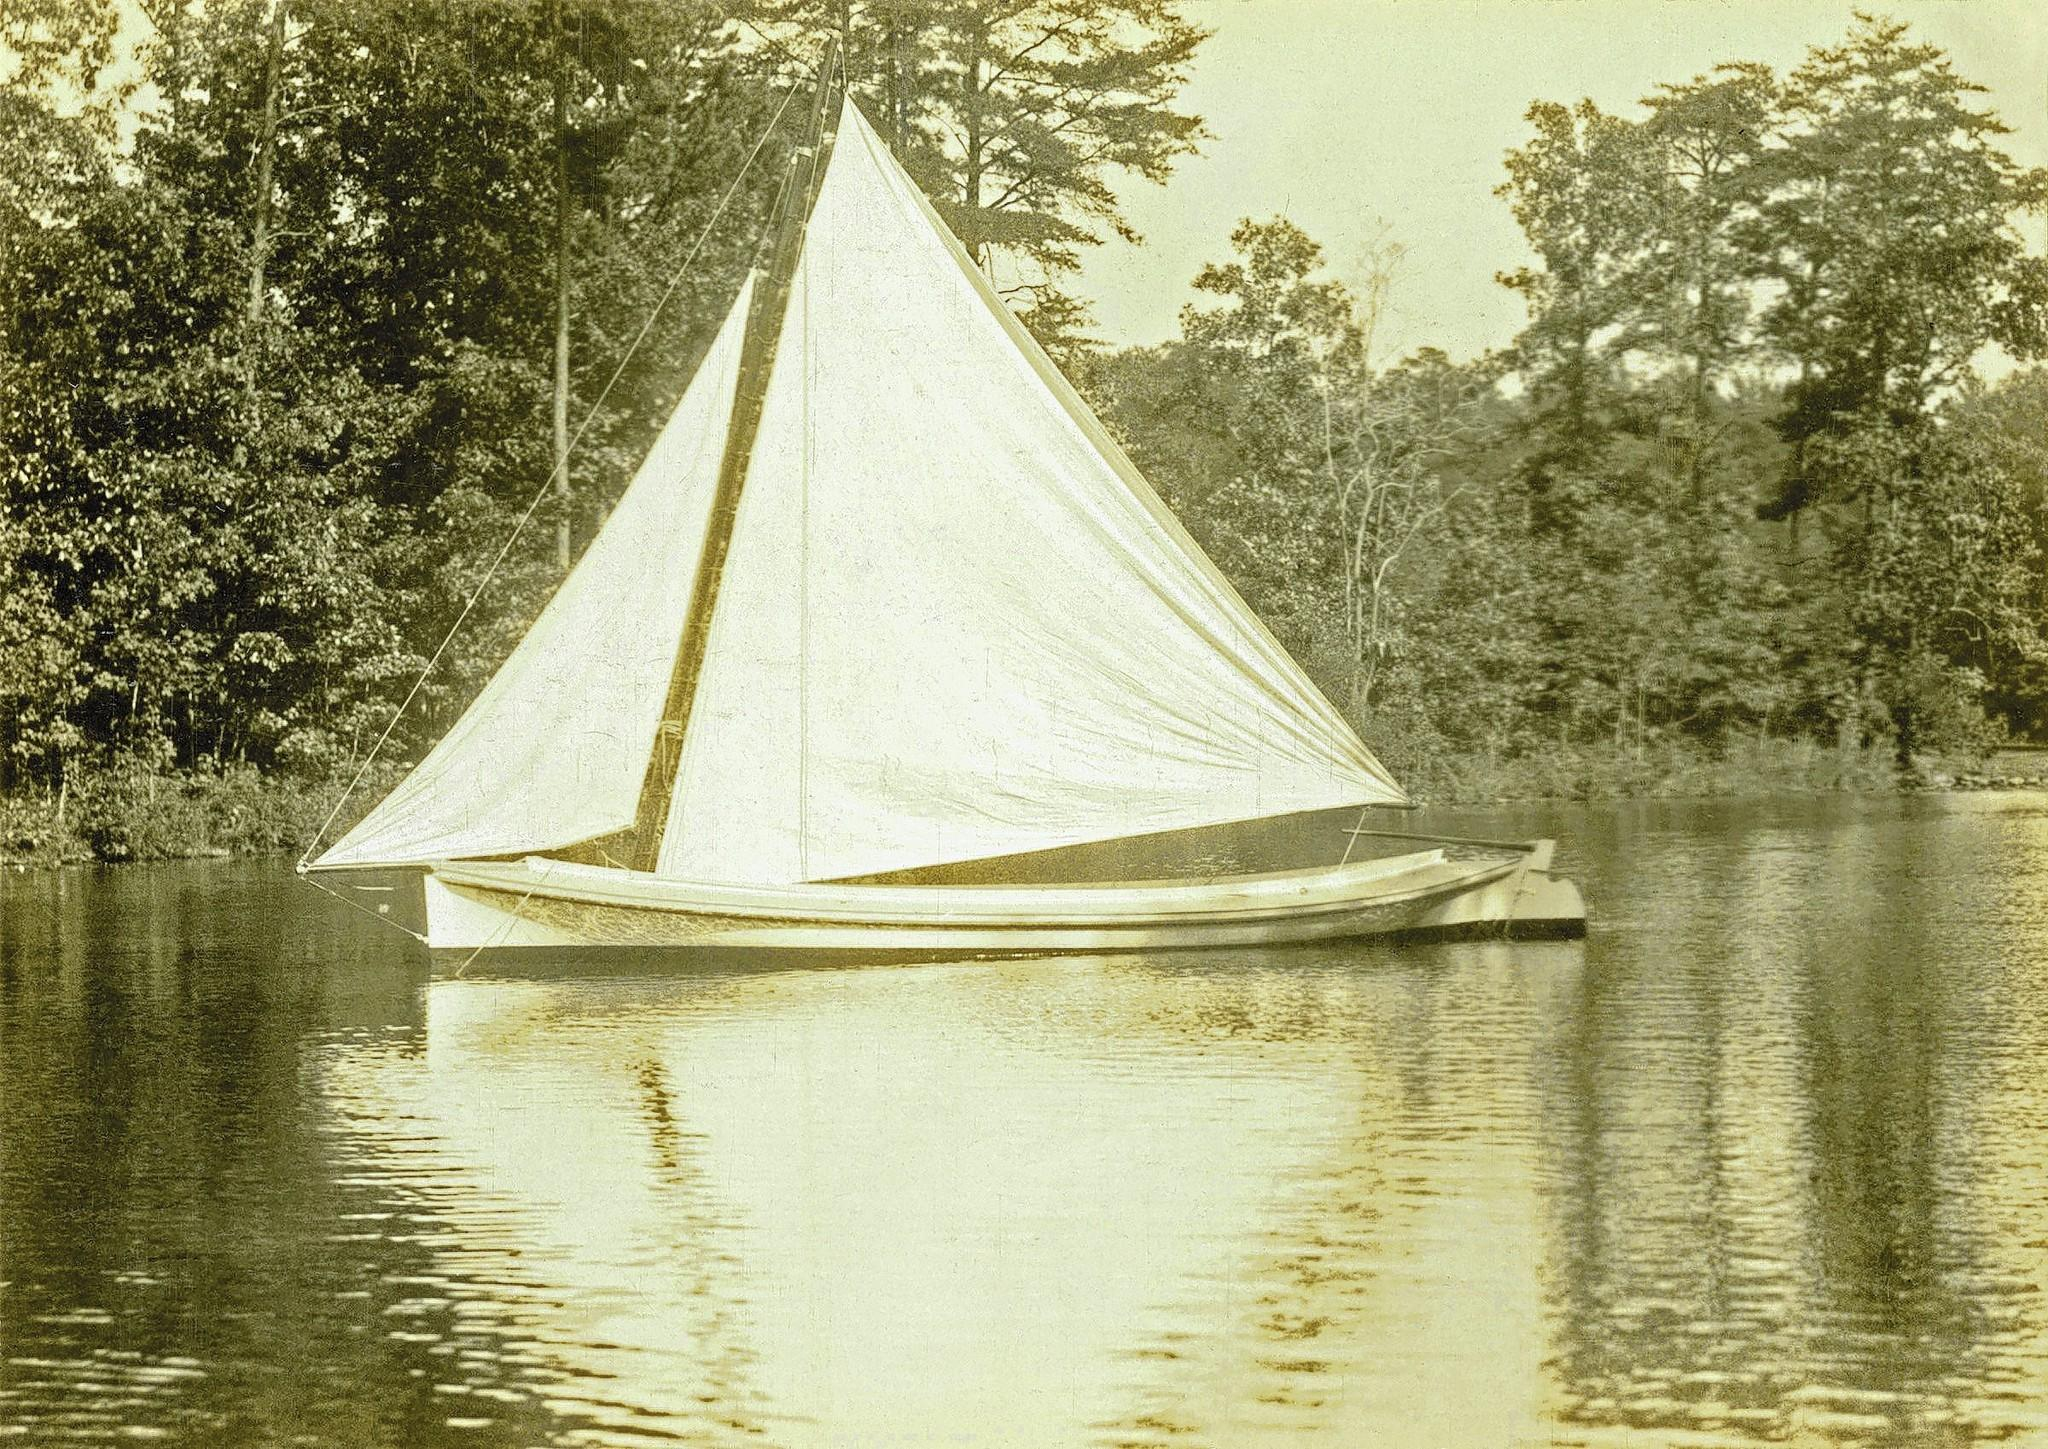 The Poquoson log canoe featured high sides designed to navigate the sometimes rough waters of the less-protected lower Chesapeake Bay, plus a single mast with a simple, easy-to-use triangular sail. Most of the examples were robustly built with three logs.